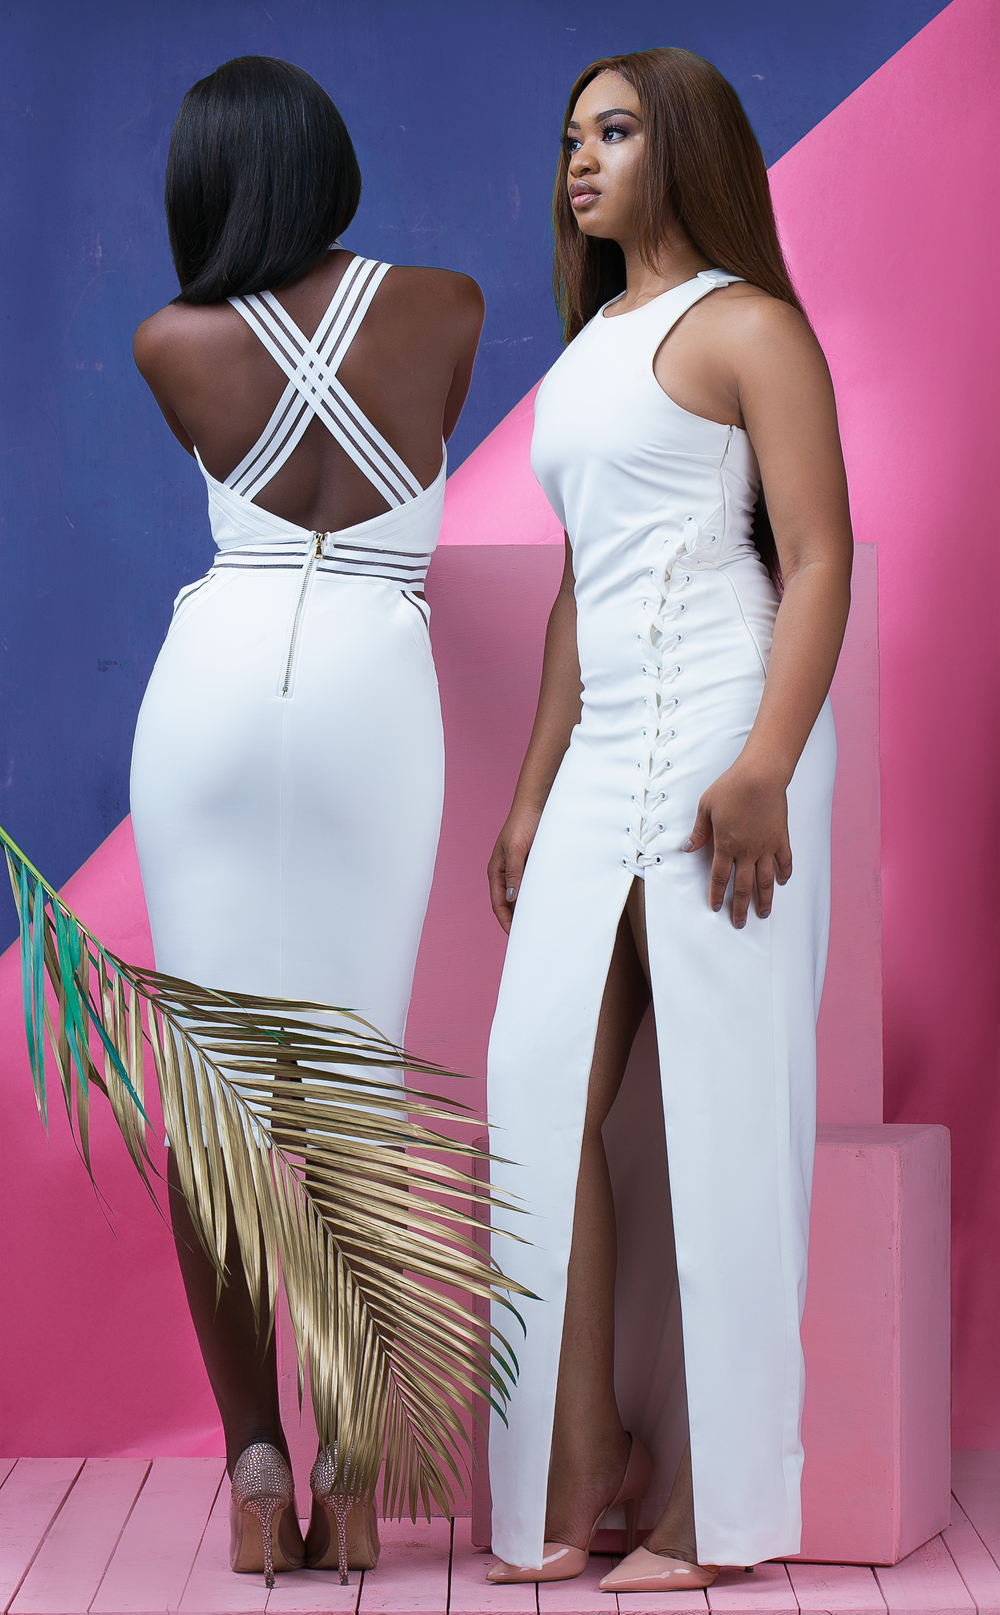 Femme By Yele launches it SS17 Campaign which focuses on the Urban Woman